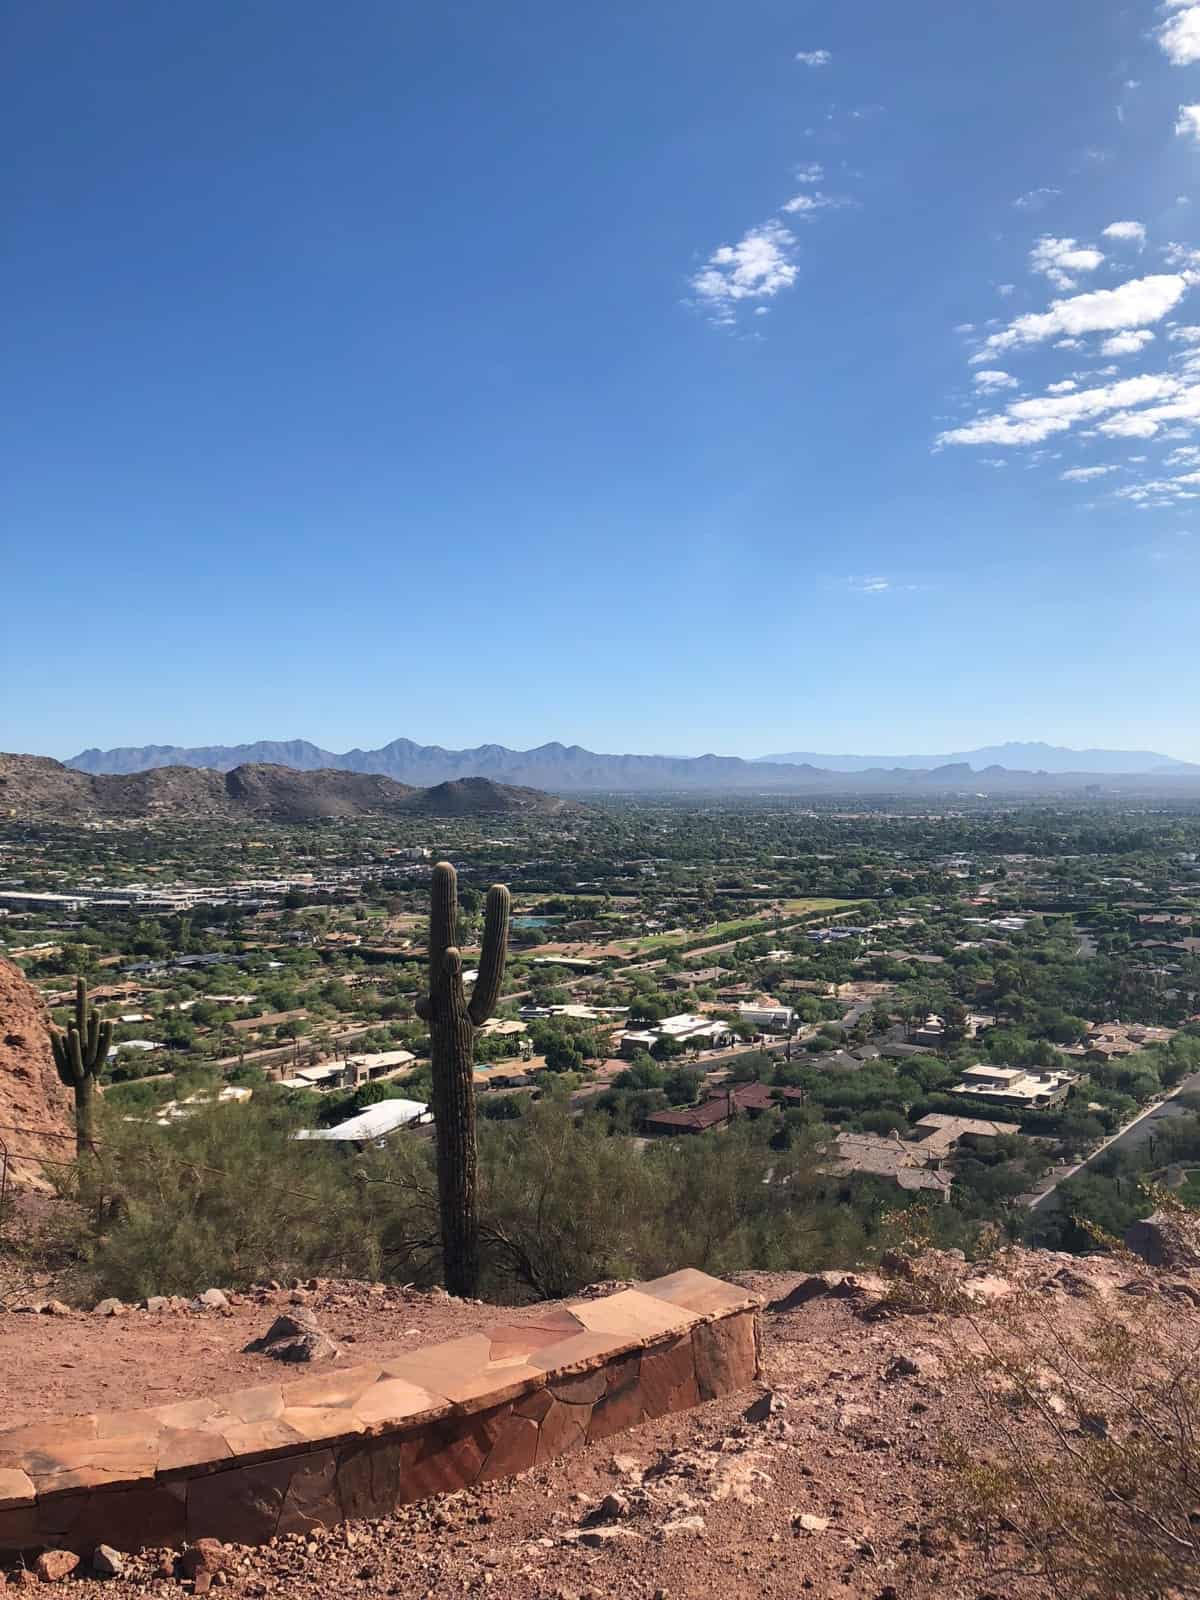 Landscape of Scottsdale, AZ from a mountain